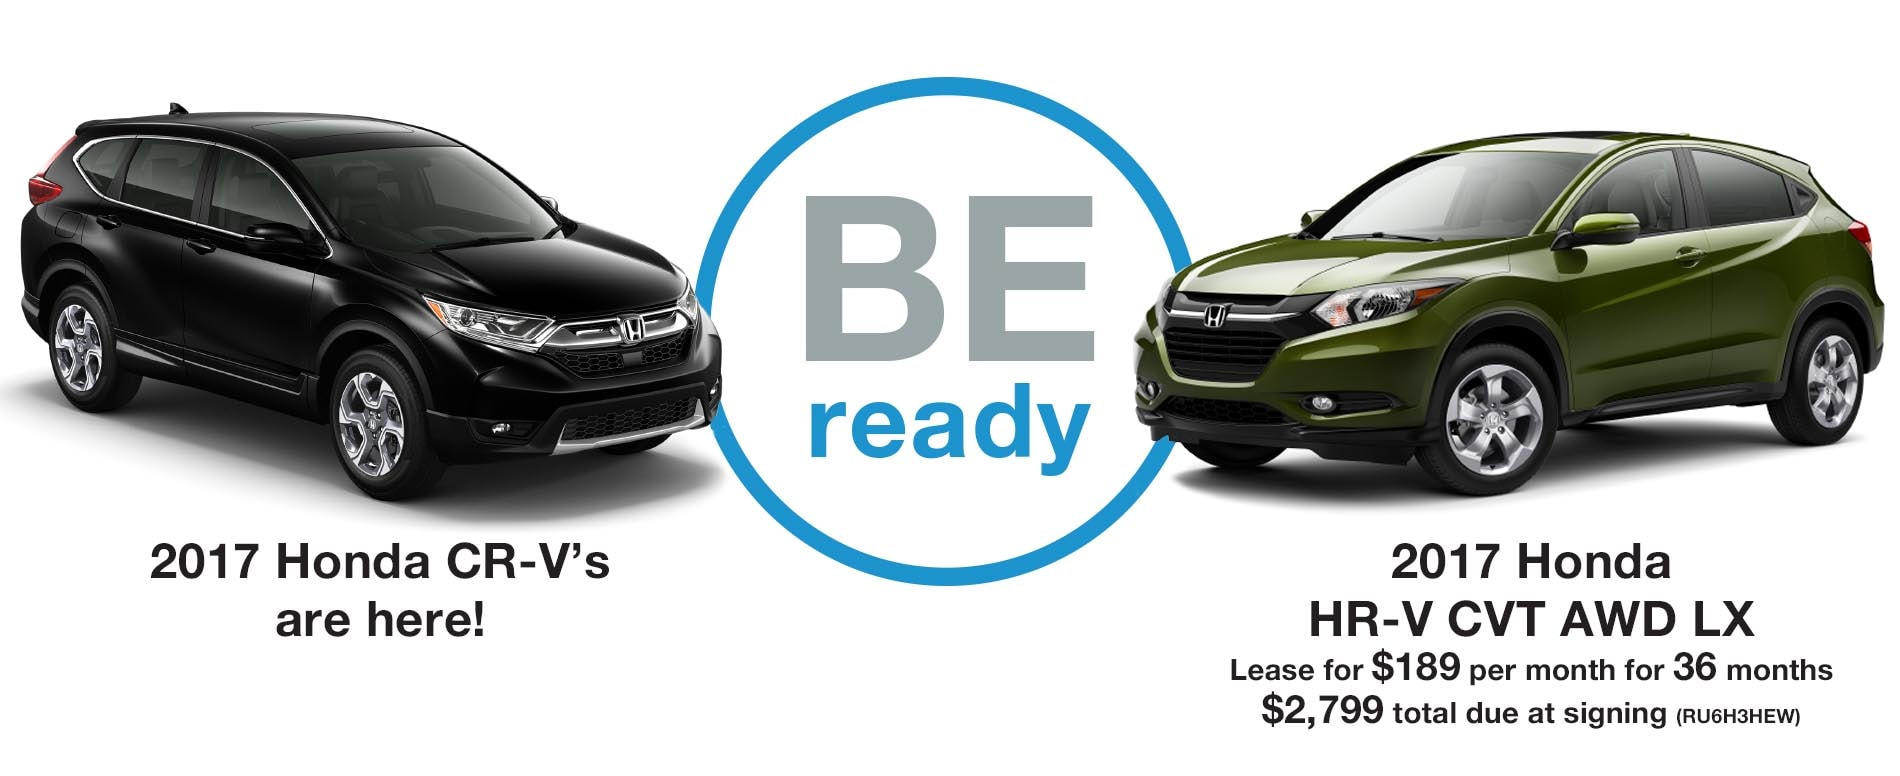 BE READY. Lease a Honda HR-V for $189 per month with $2,799 due at signing.